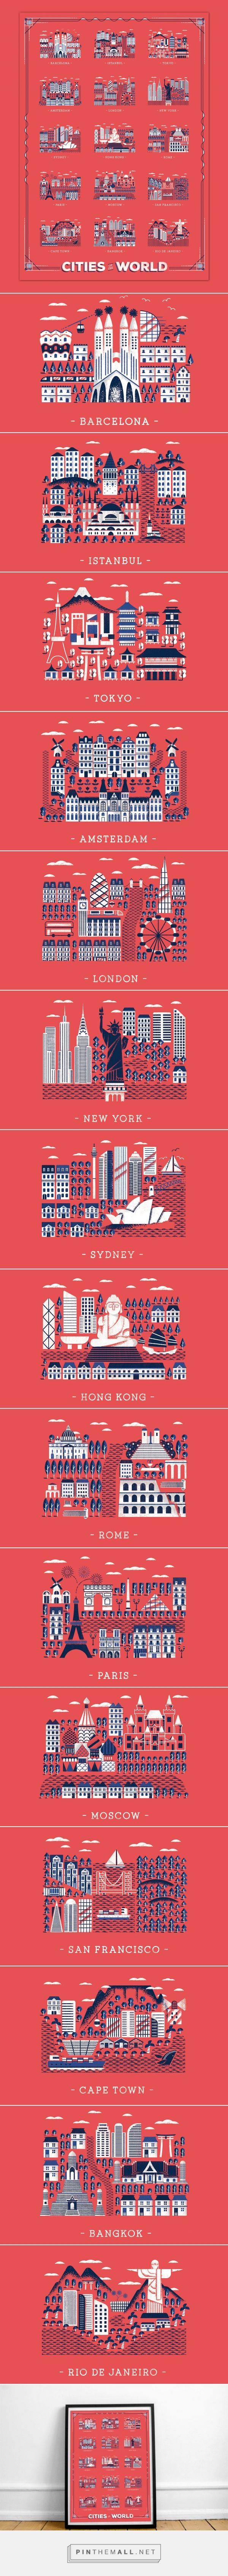 Daniele Simonelli was commisoned by the London based app Great Little Place to design a poster with 15 cities from around the world, focusing on their main buildings and landmarks. You can buy this poster on their store.